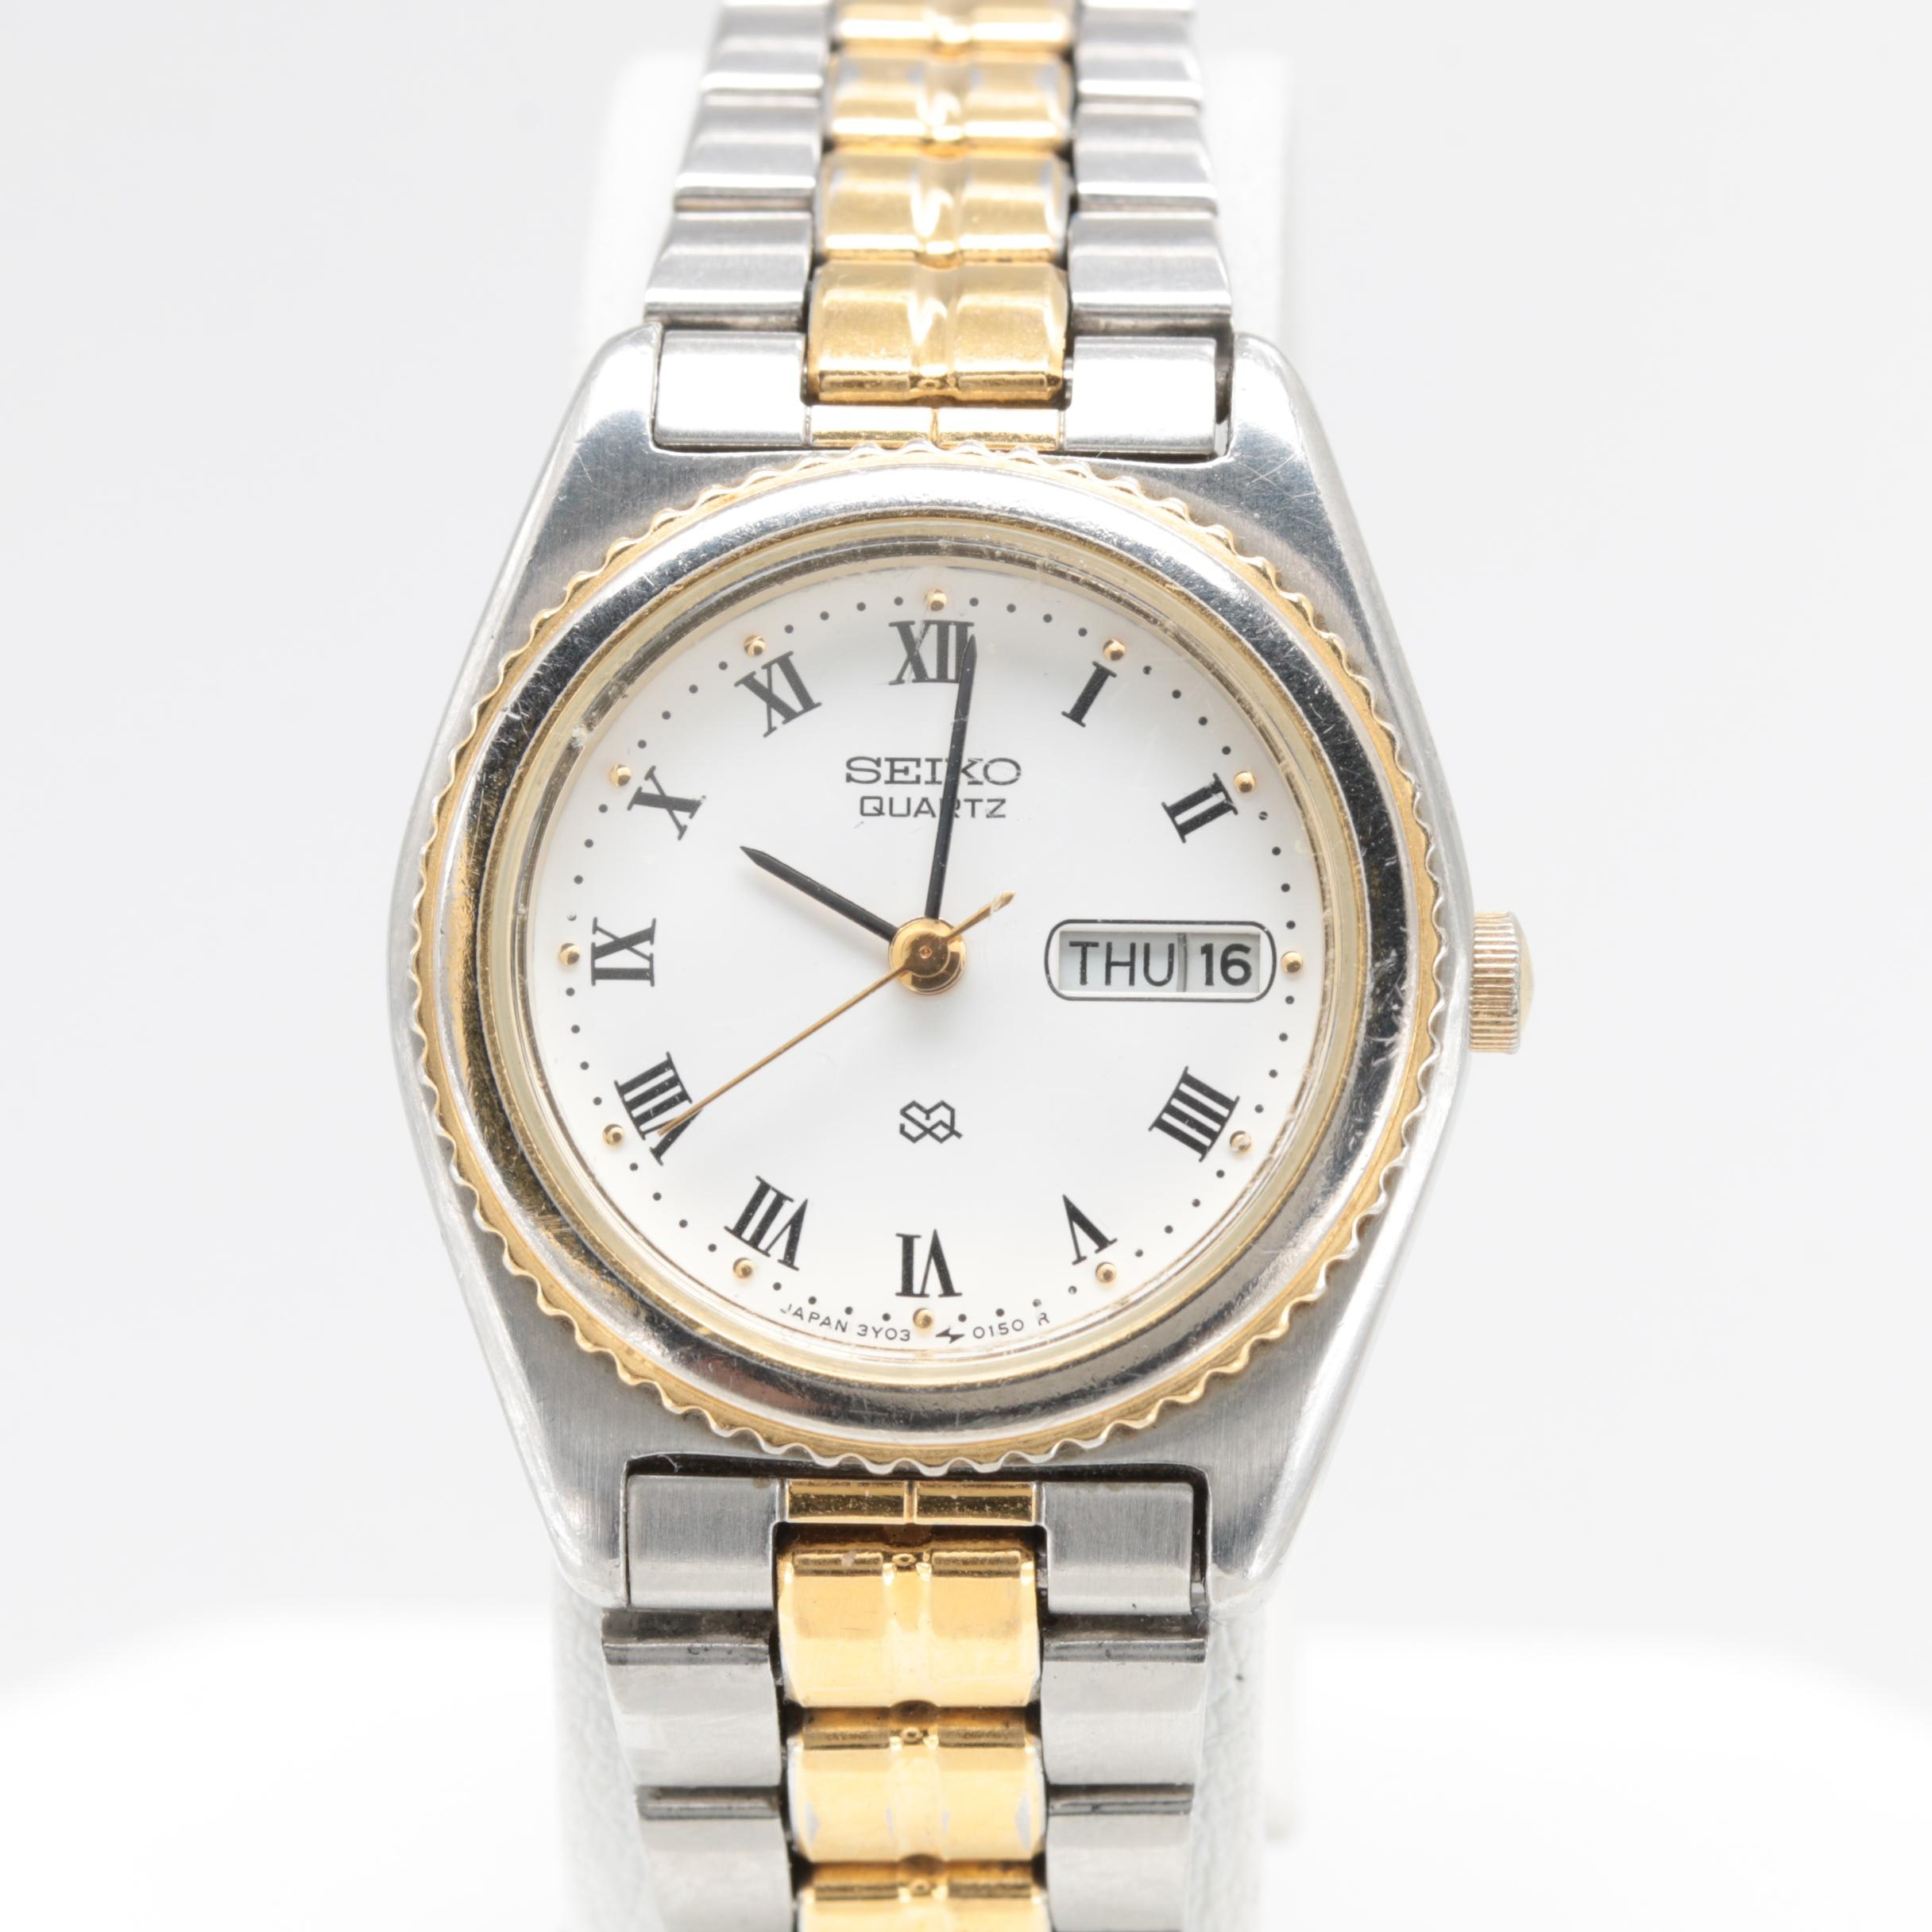 Seiko Two Tone Day and Date Quartz Stainless Steel Wristwatch